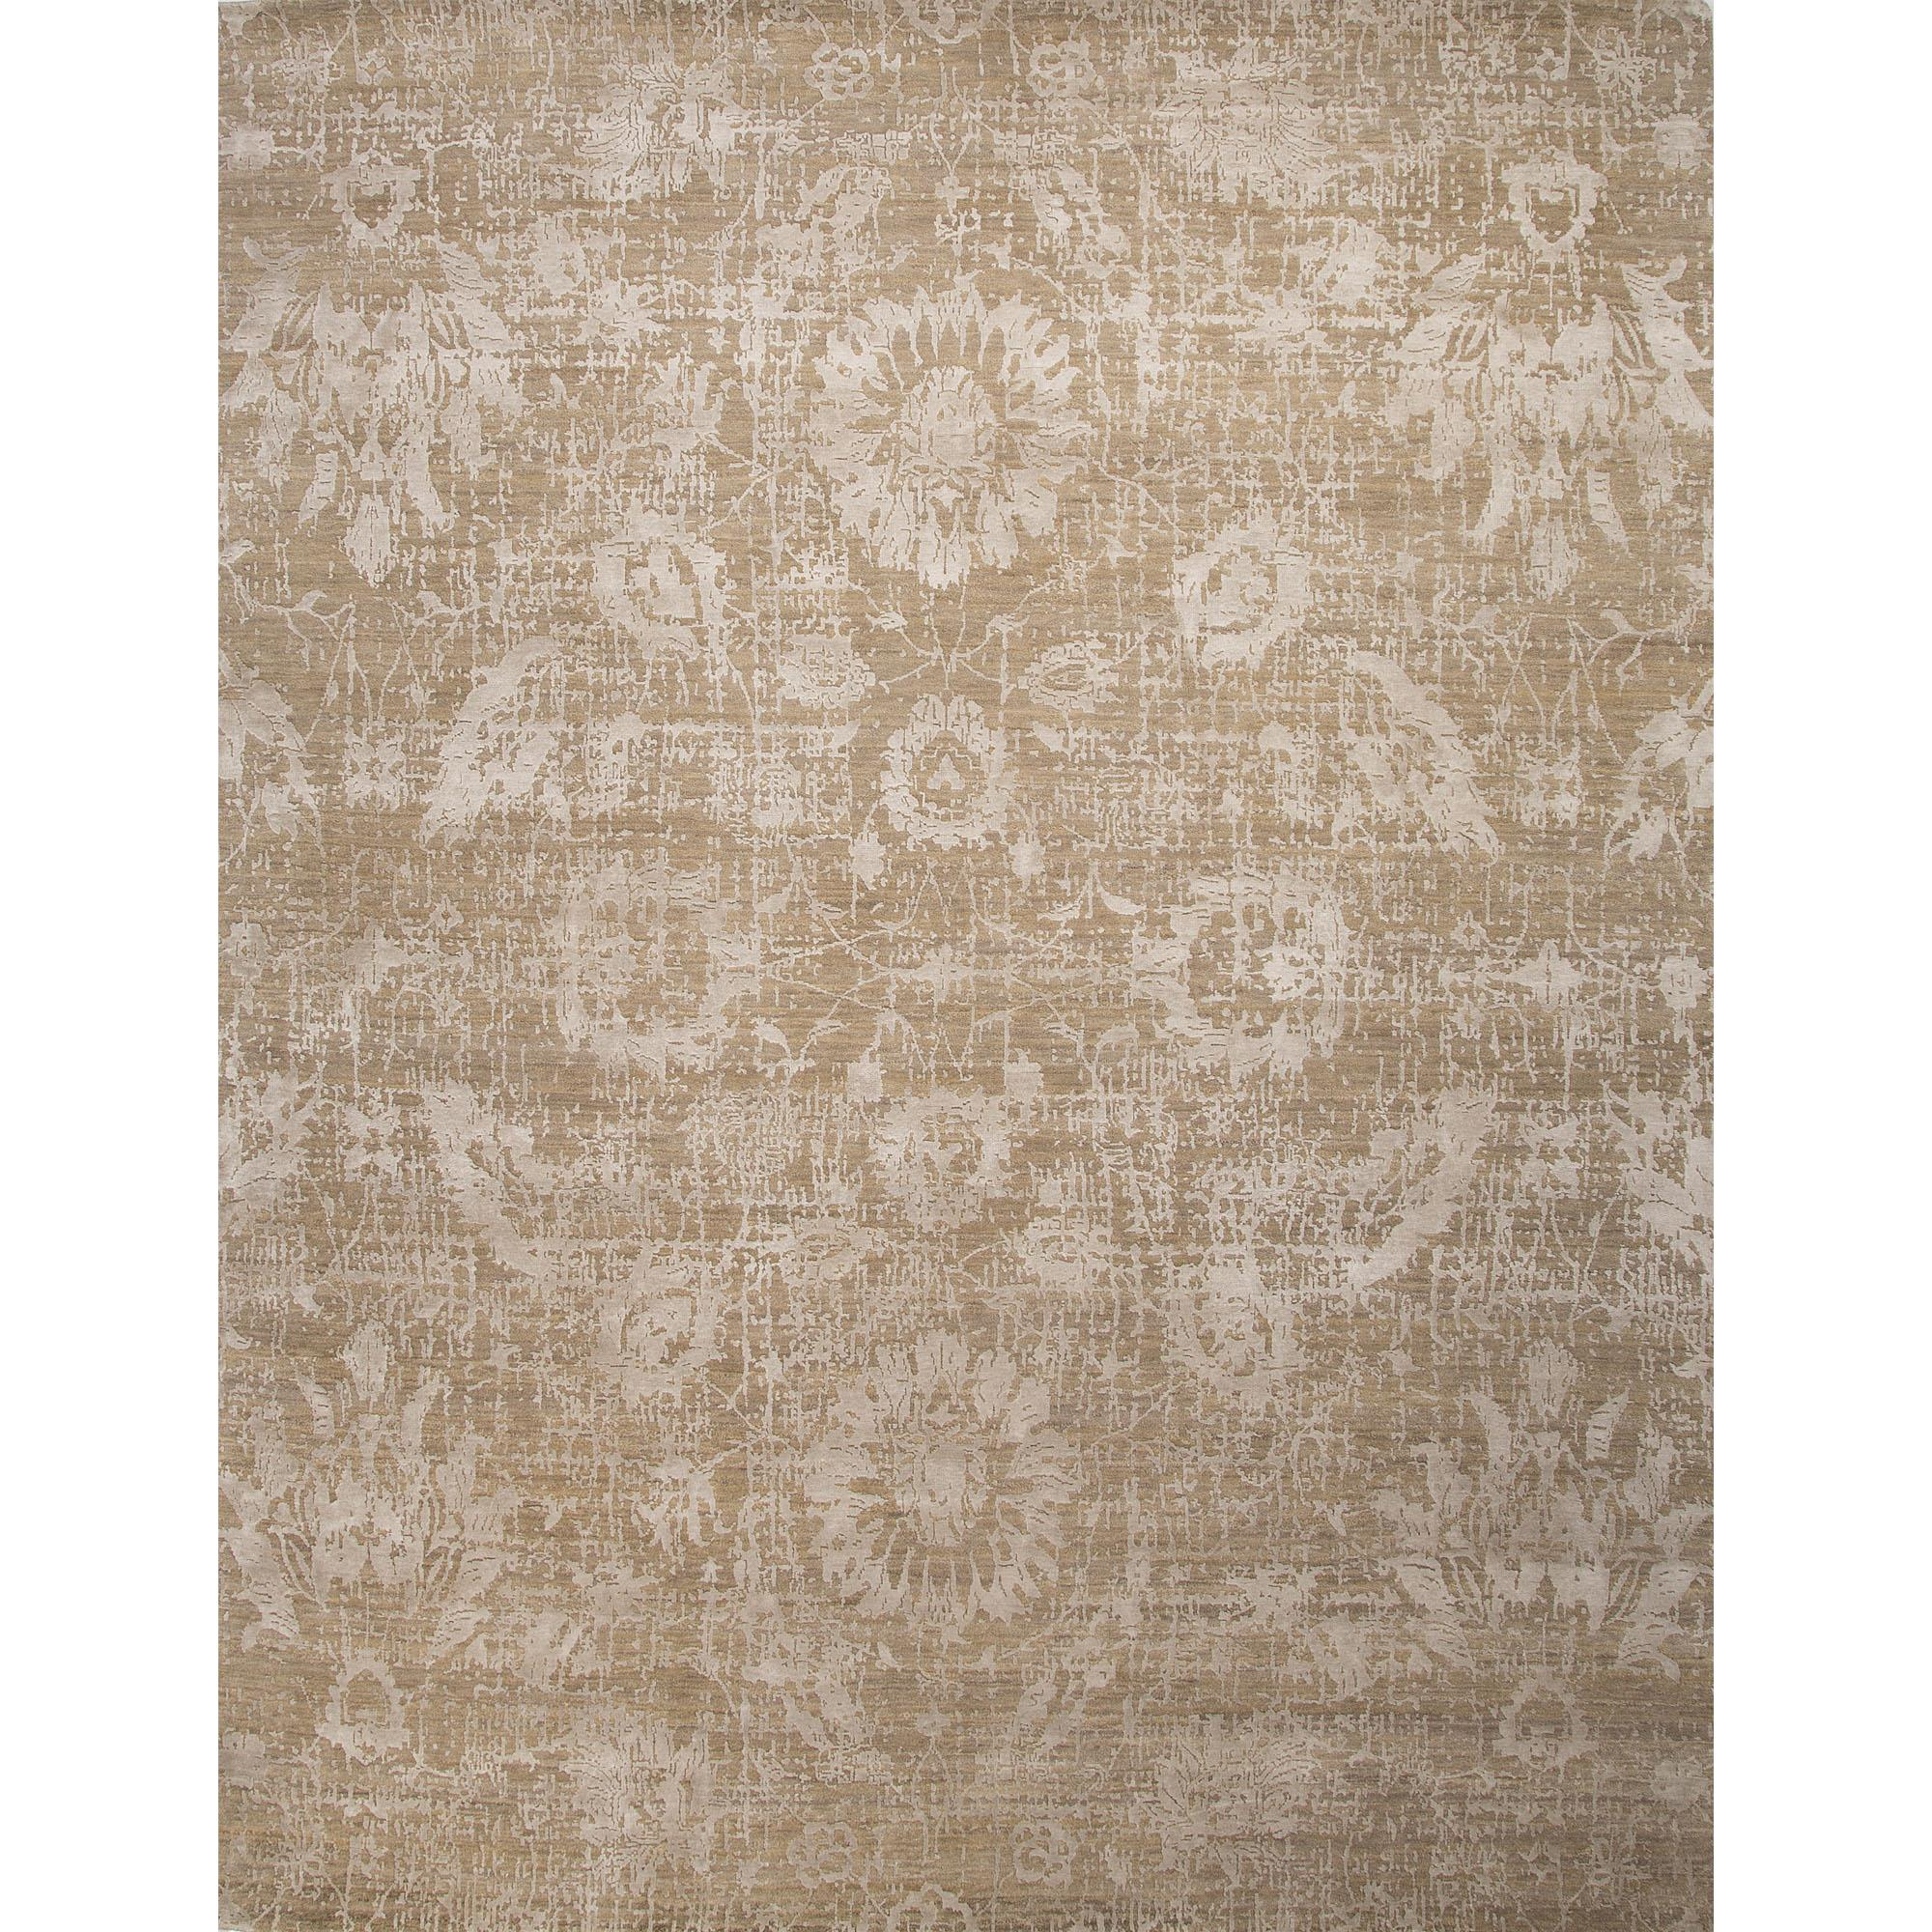 JAIPUR Rugs Chaos Theory By Kavi 9 x 12 Rug - Item Number: RUG117033